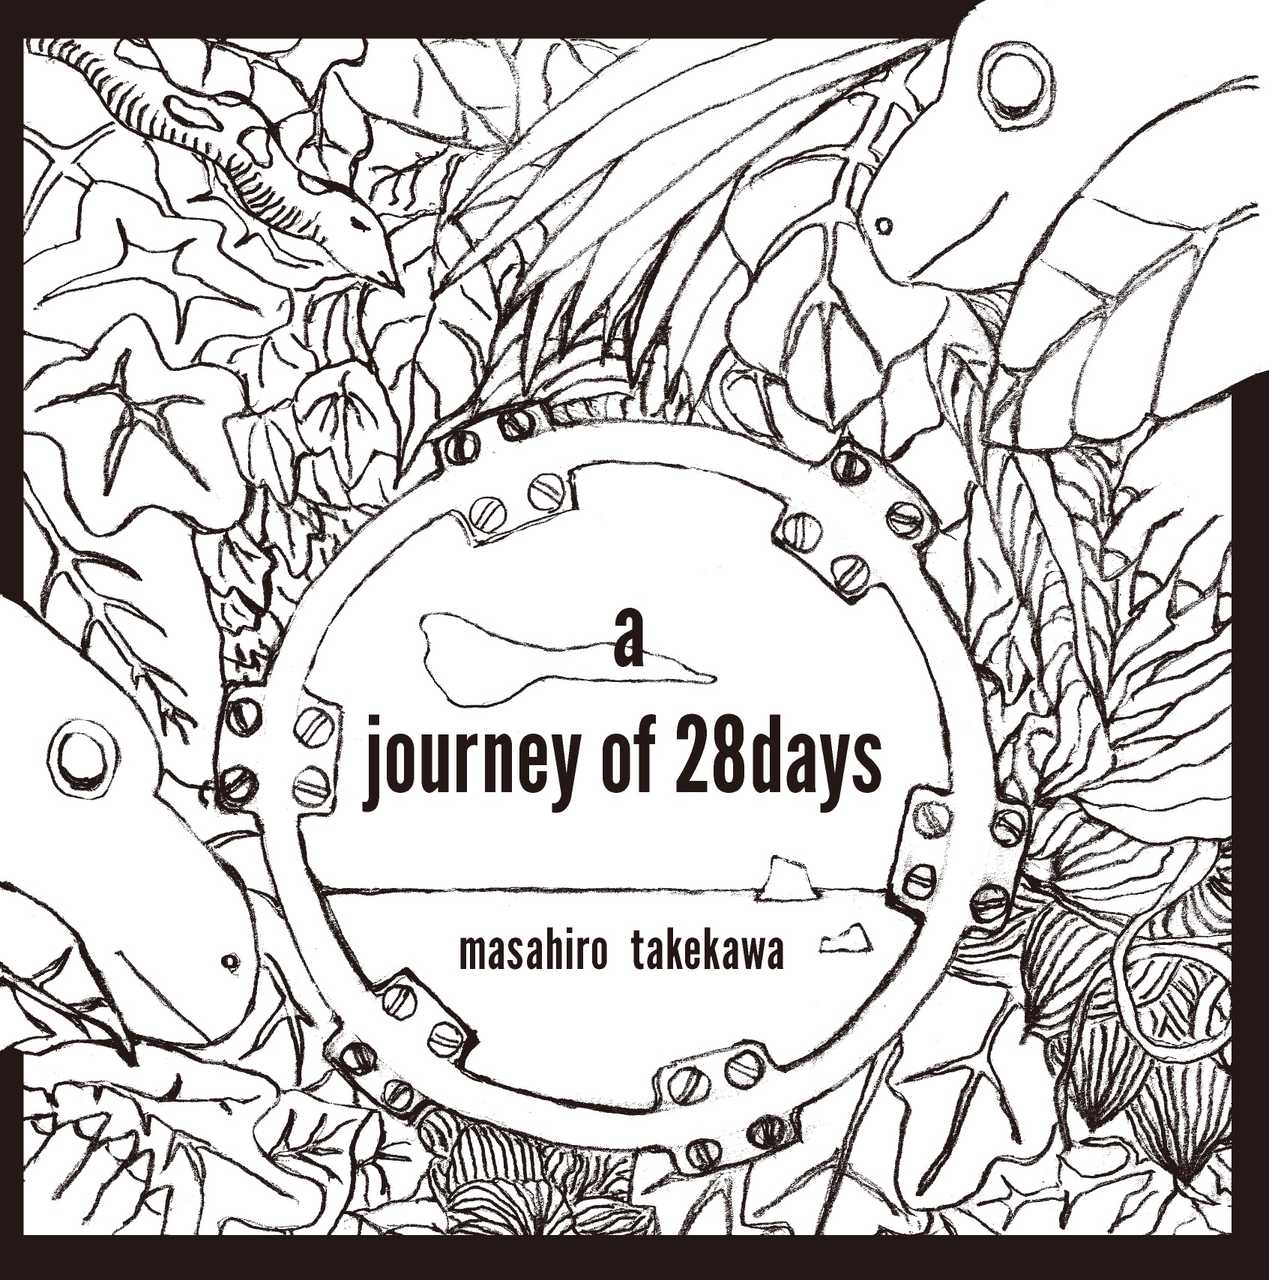 アルバム『a journey of 28days』